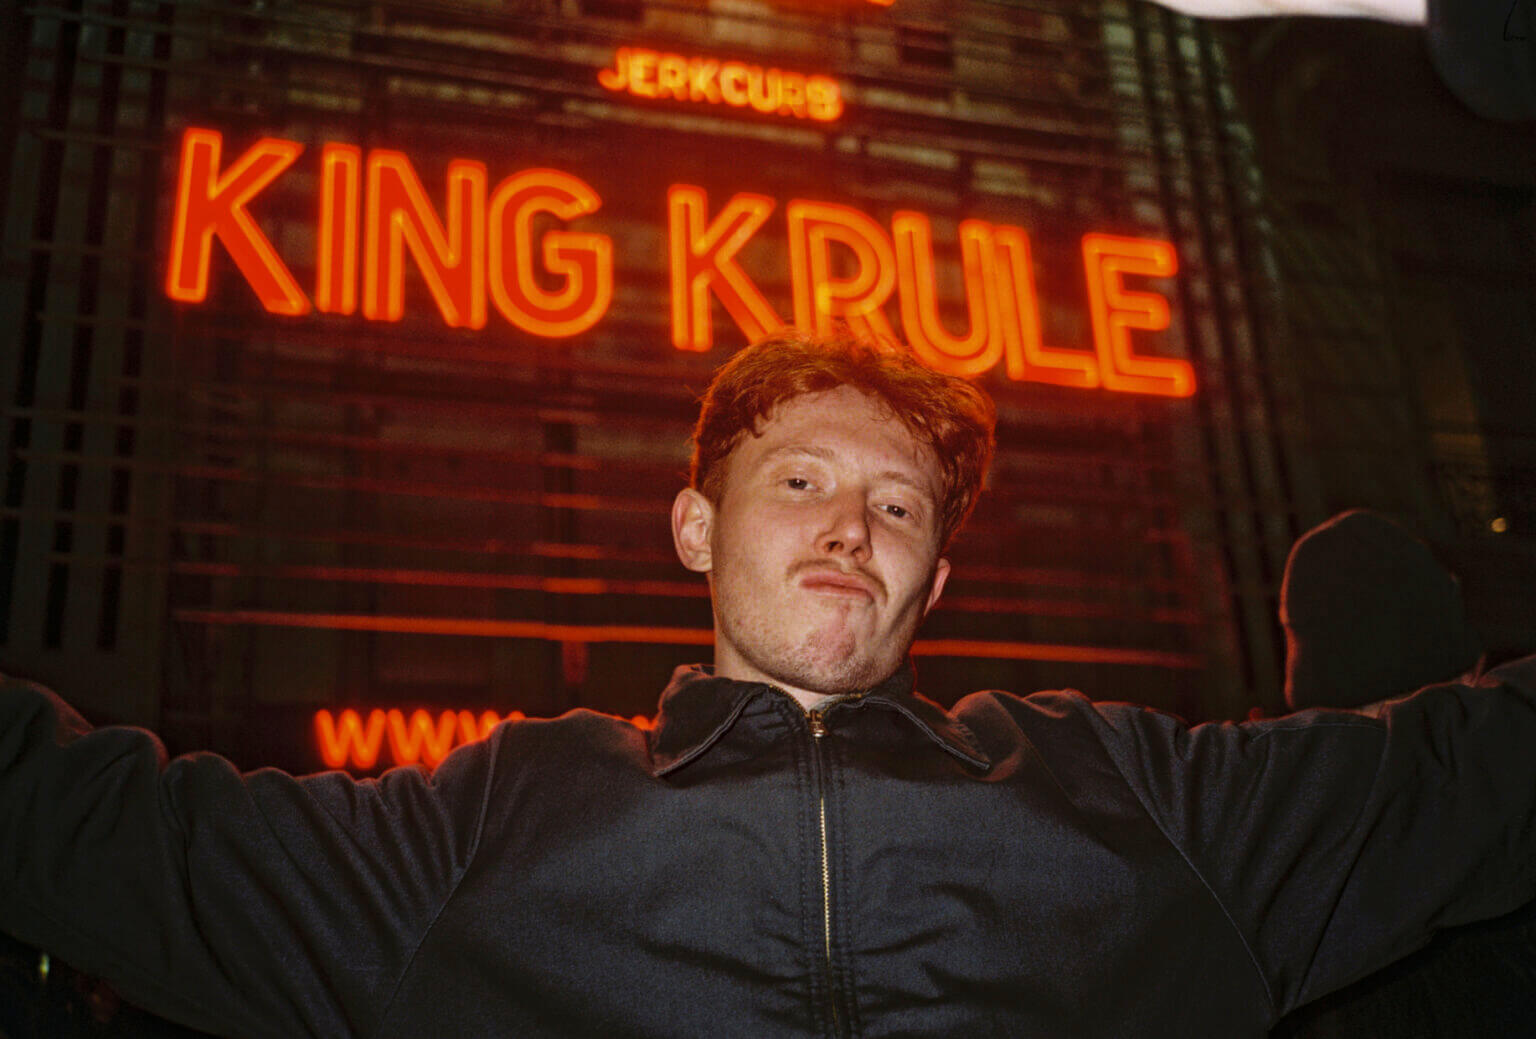 Archy Marshall AKA: King Krule, has announced a new live album entitled You Heat Me Up, You Cool Me Down.